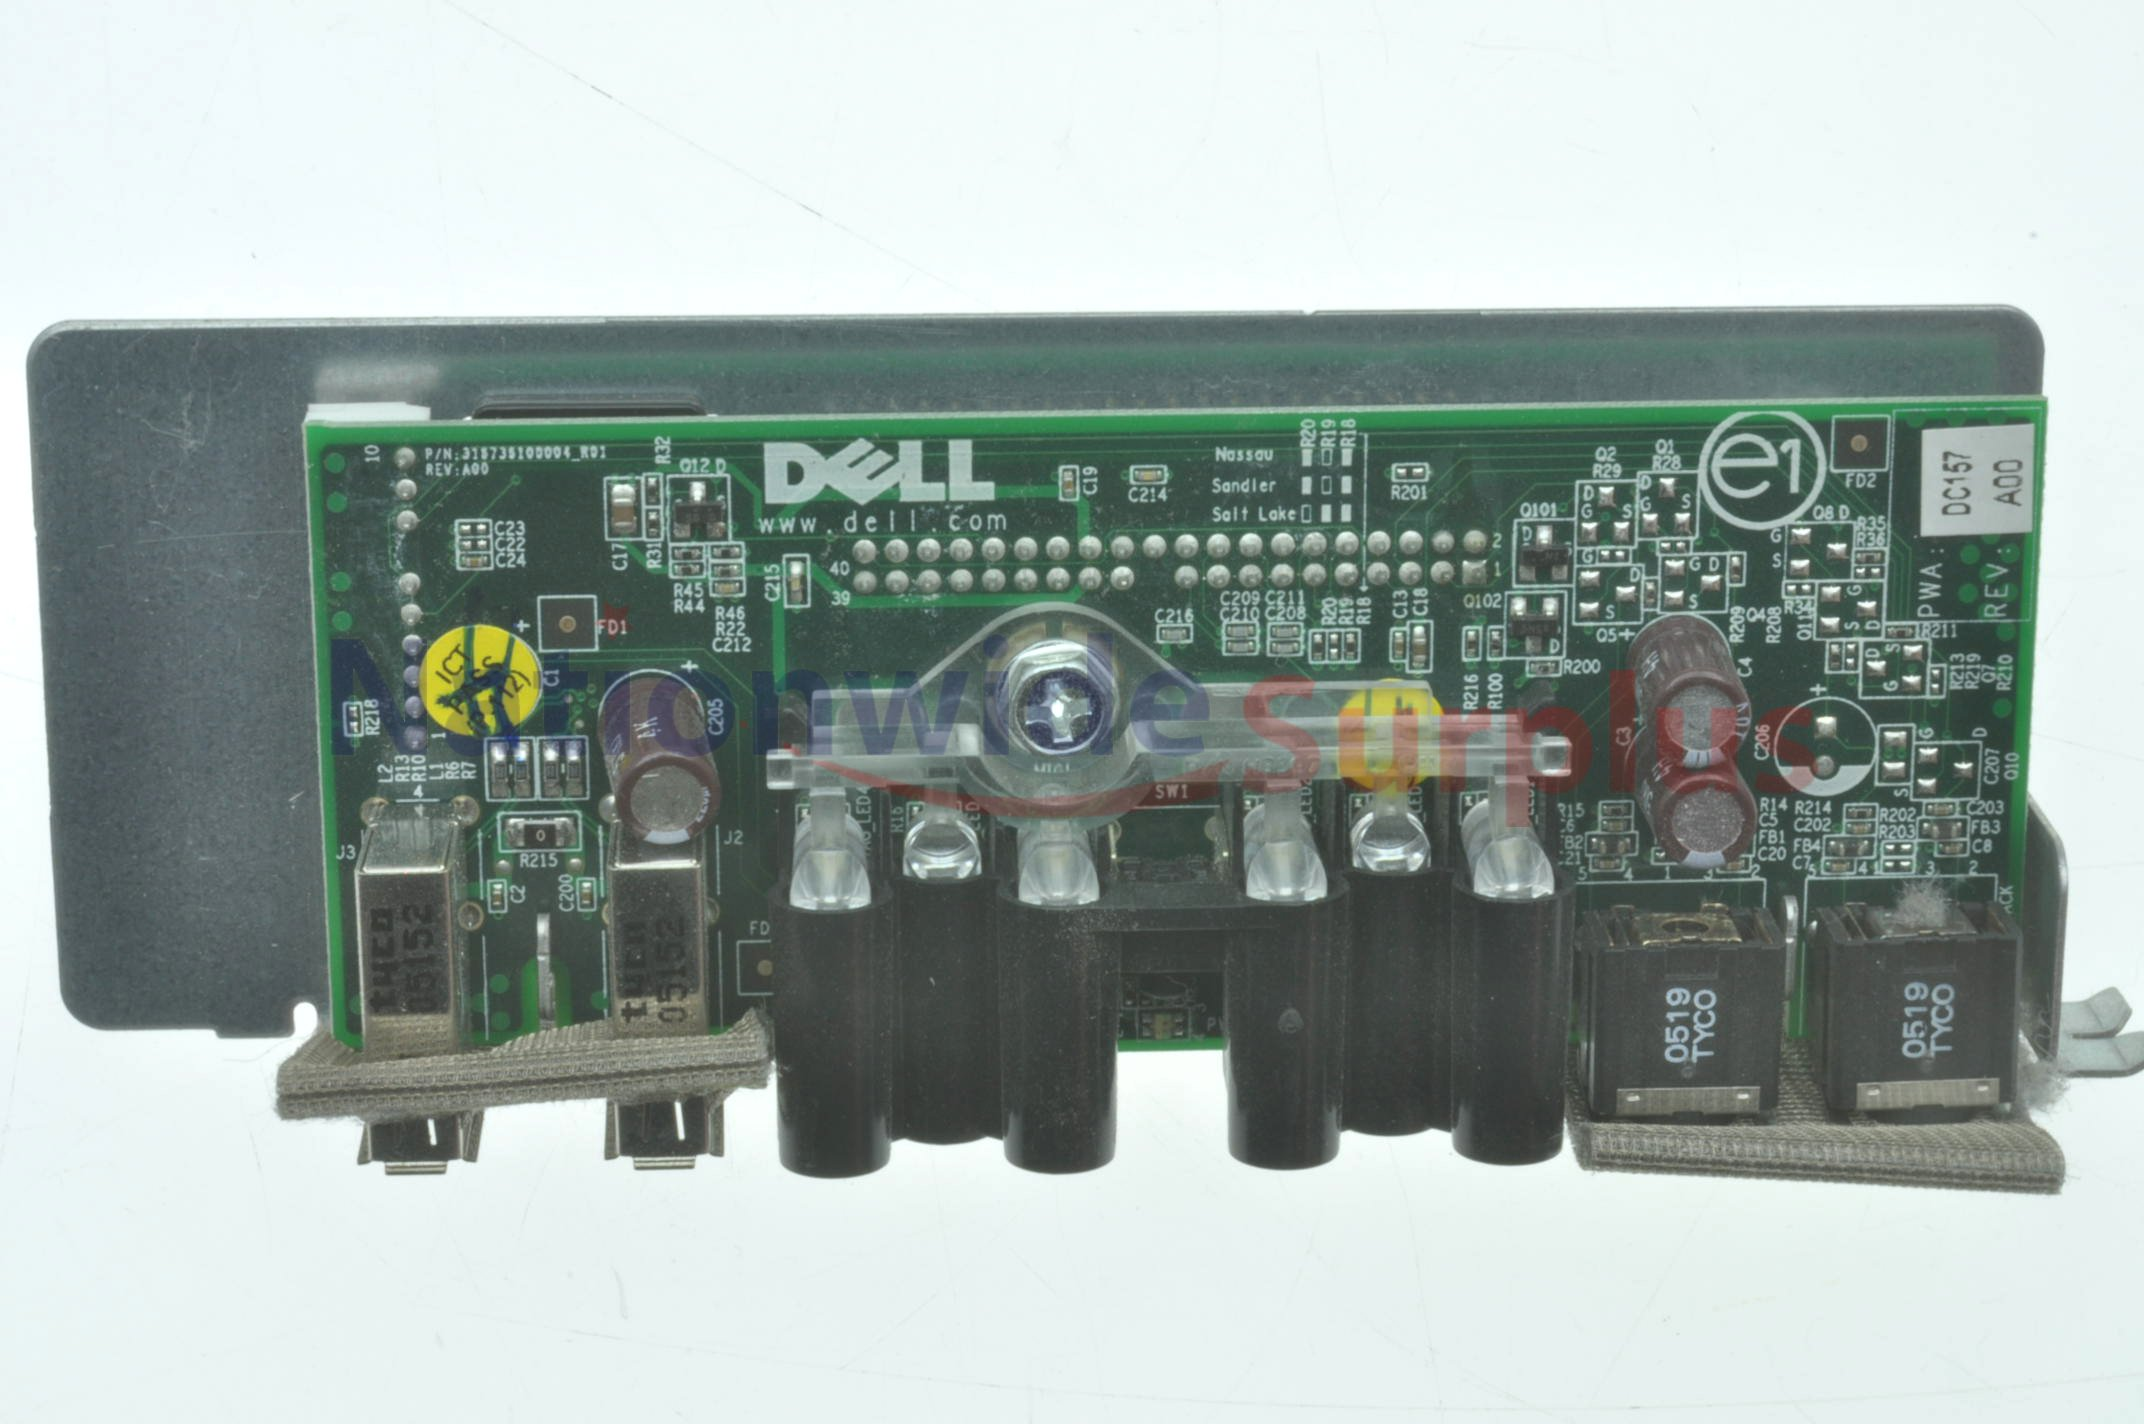 Dell Dimension 9100 9150 Xps 400 Power Switch Panel Button